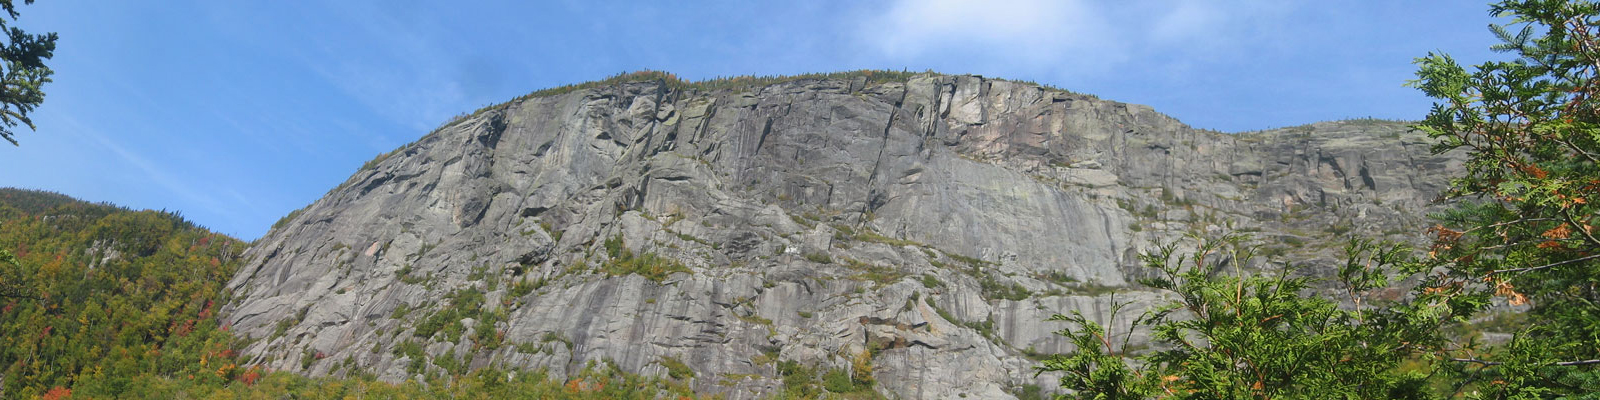 Sheer cliff seen from below